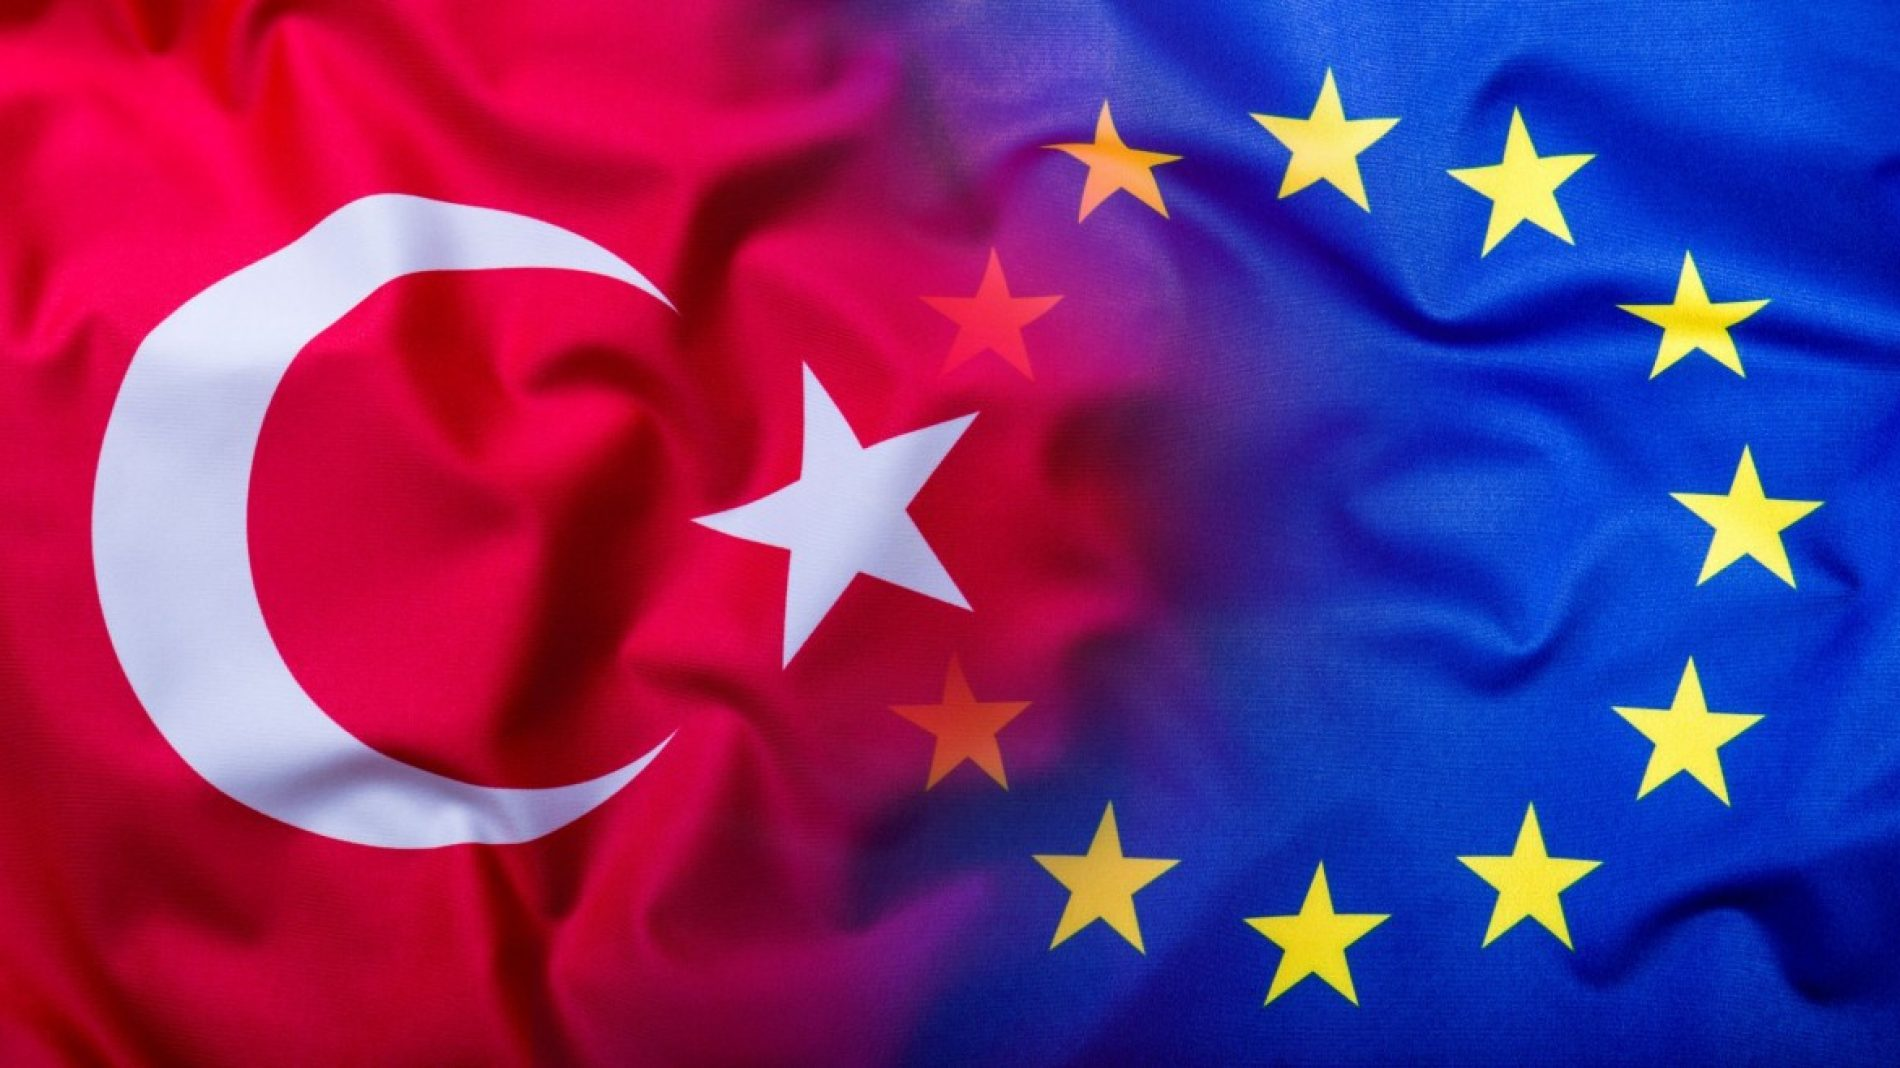 The EU and Turkey flags together